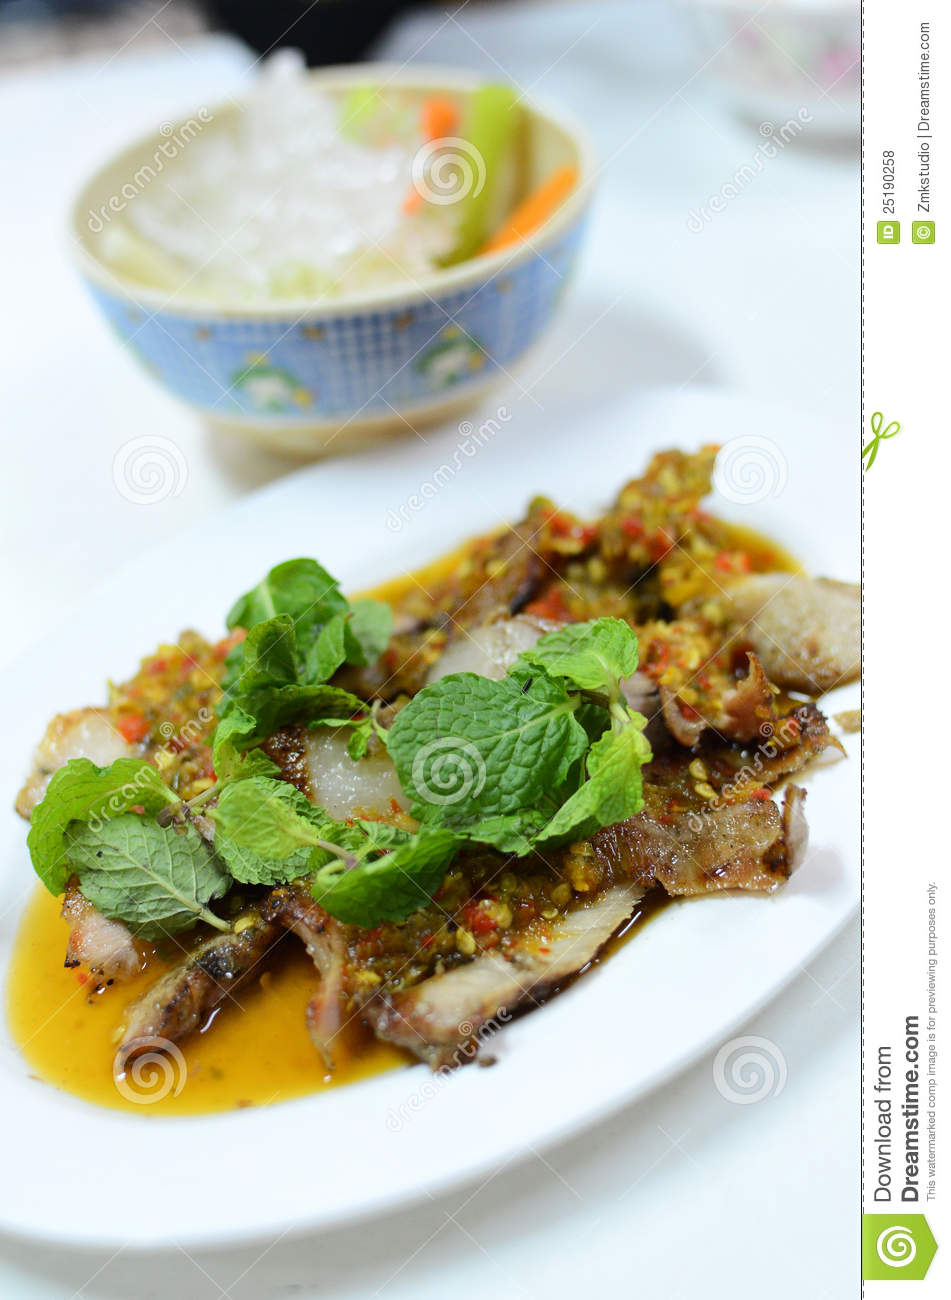 Spicy salad with pork and green herb